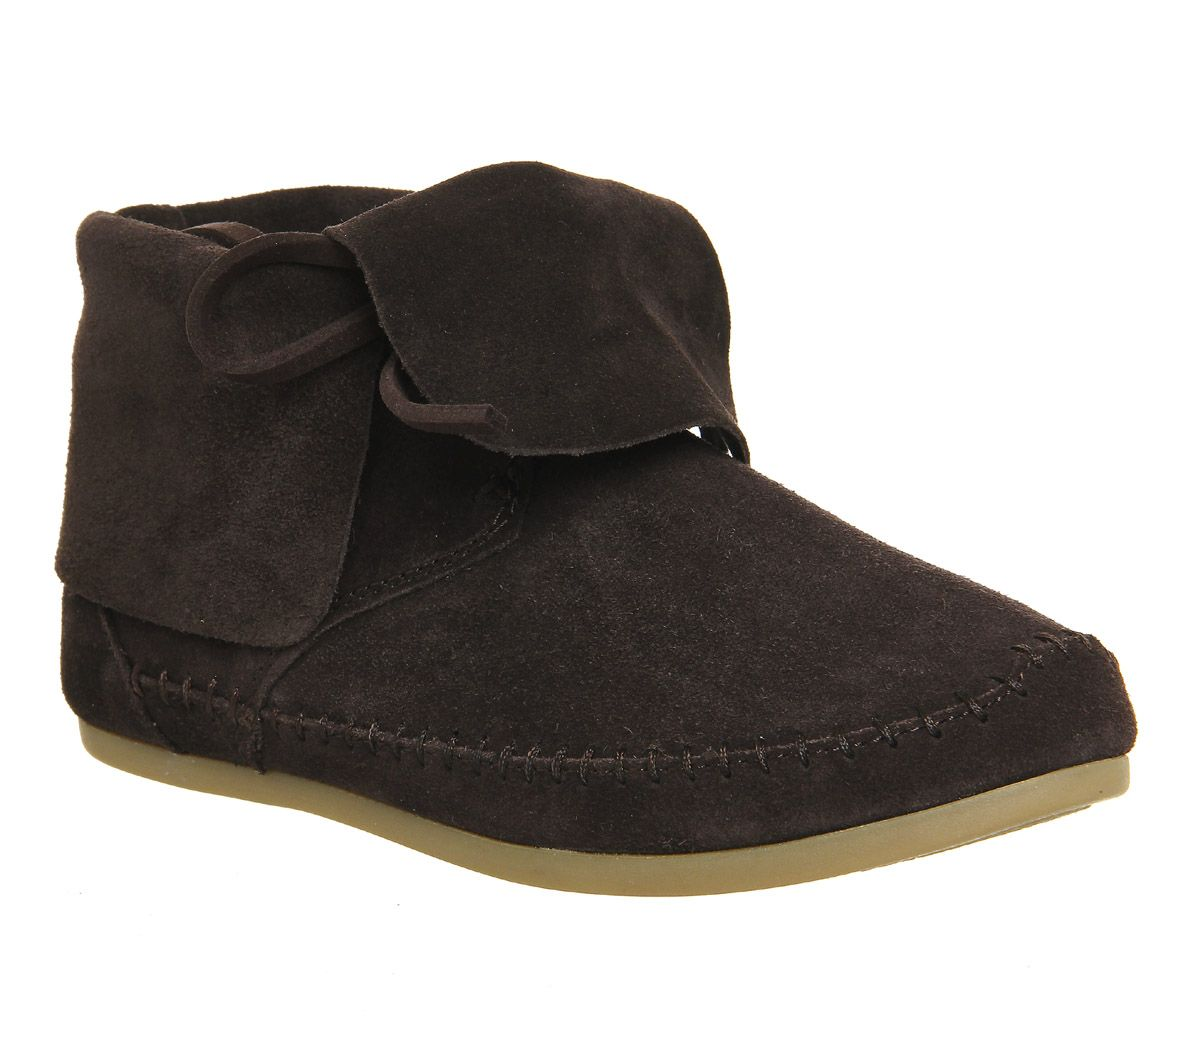 Toms Zahara Bootie Womens Ankle Boots Black Suede online sale